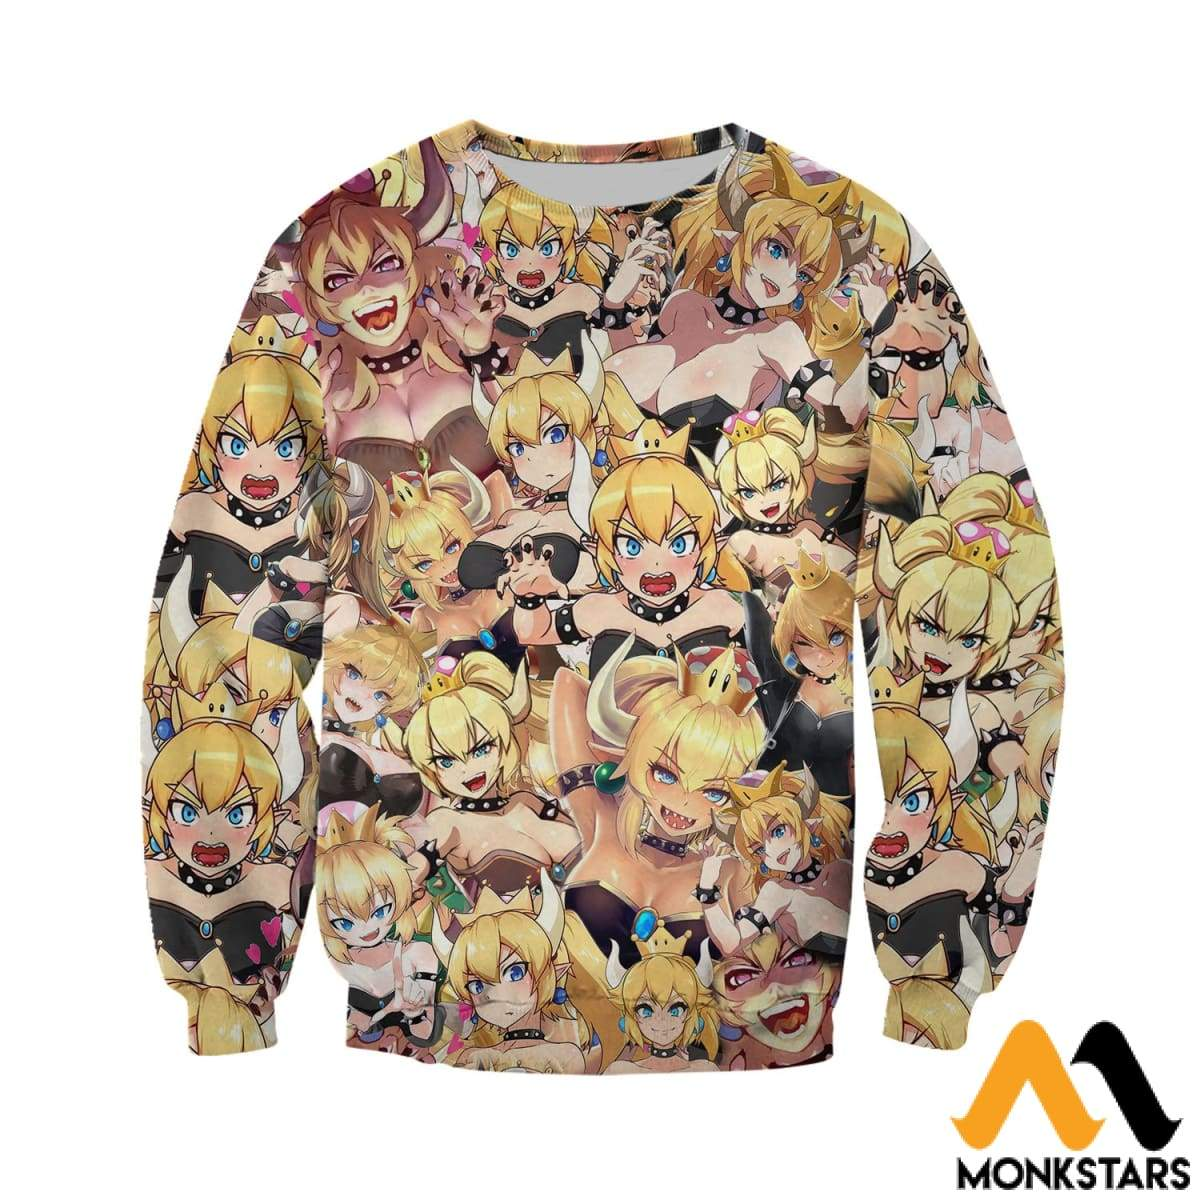 7d688a83c5e7 3D All Over Printed Bowsette Halloween Girl 2 Shirts And Shorts ...